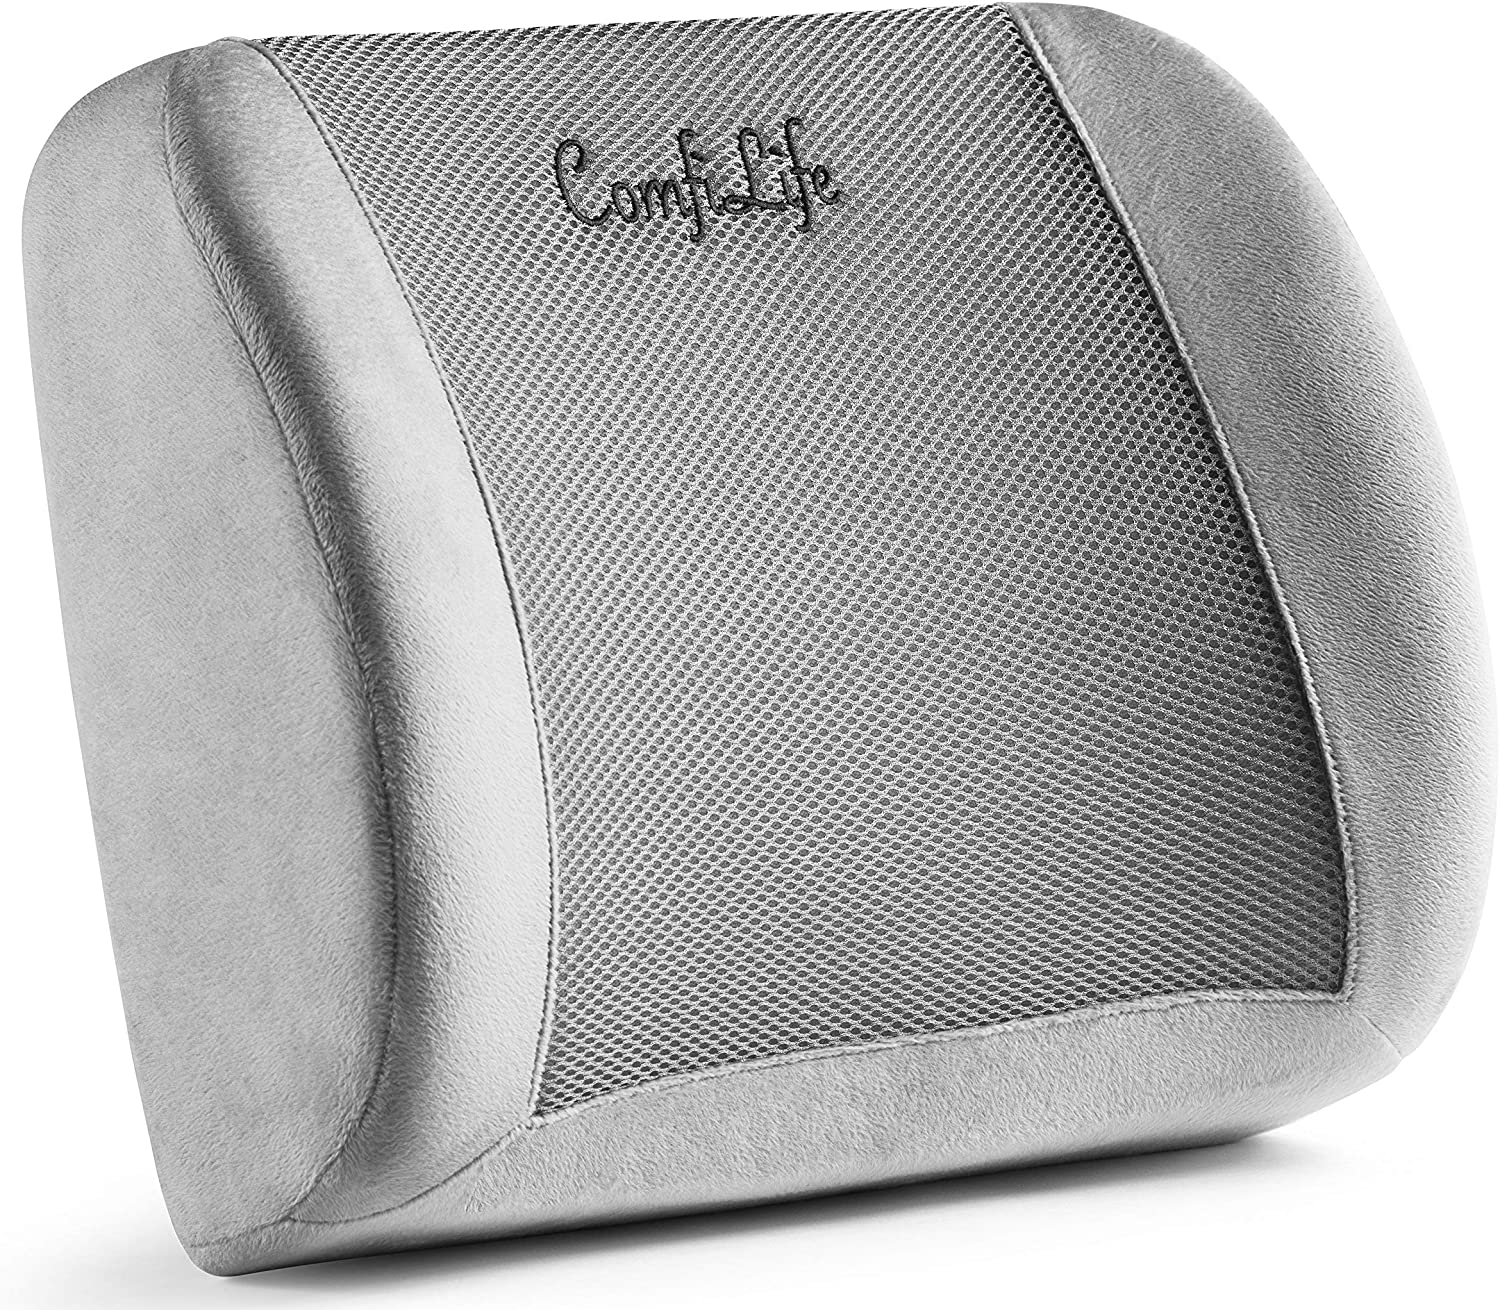 ComfiLife Lumbar Support Back Pillow Office Chair and Car Seat Cushion - Memory Foam with Adjustable Strap and Breathable 3D Mesh